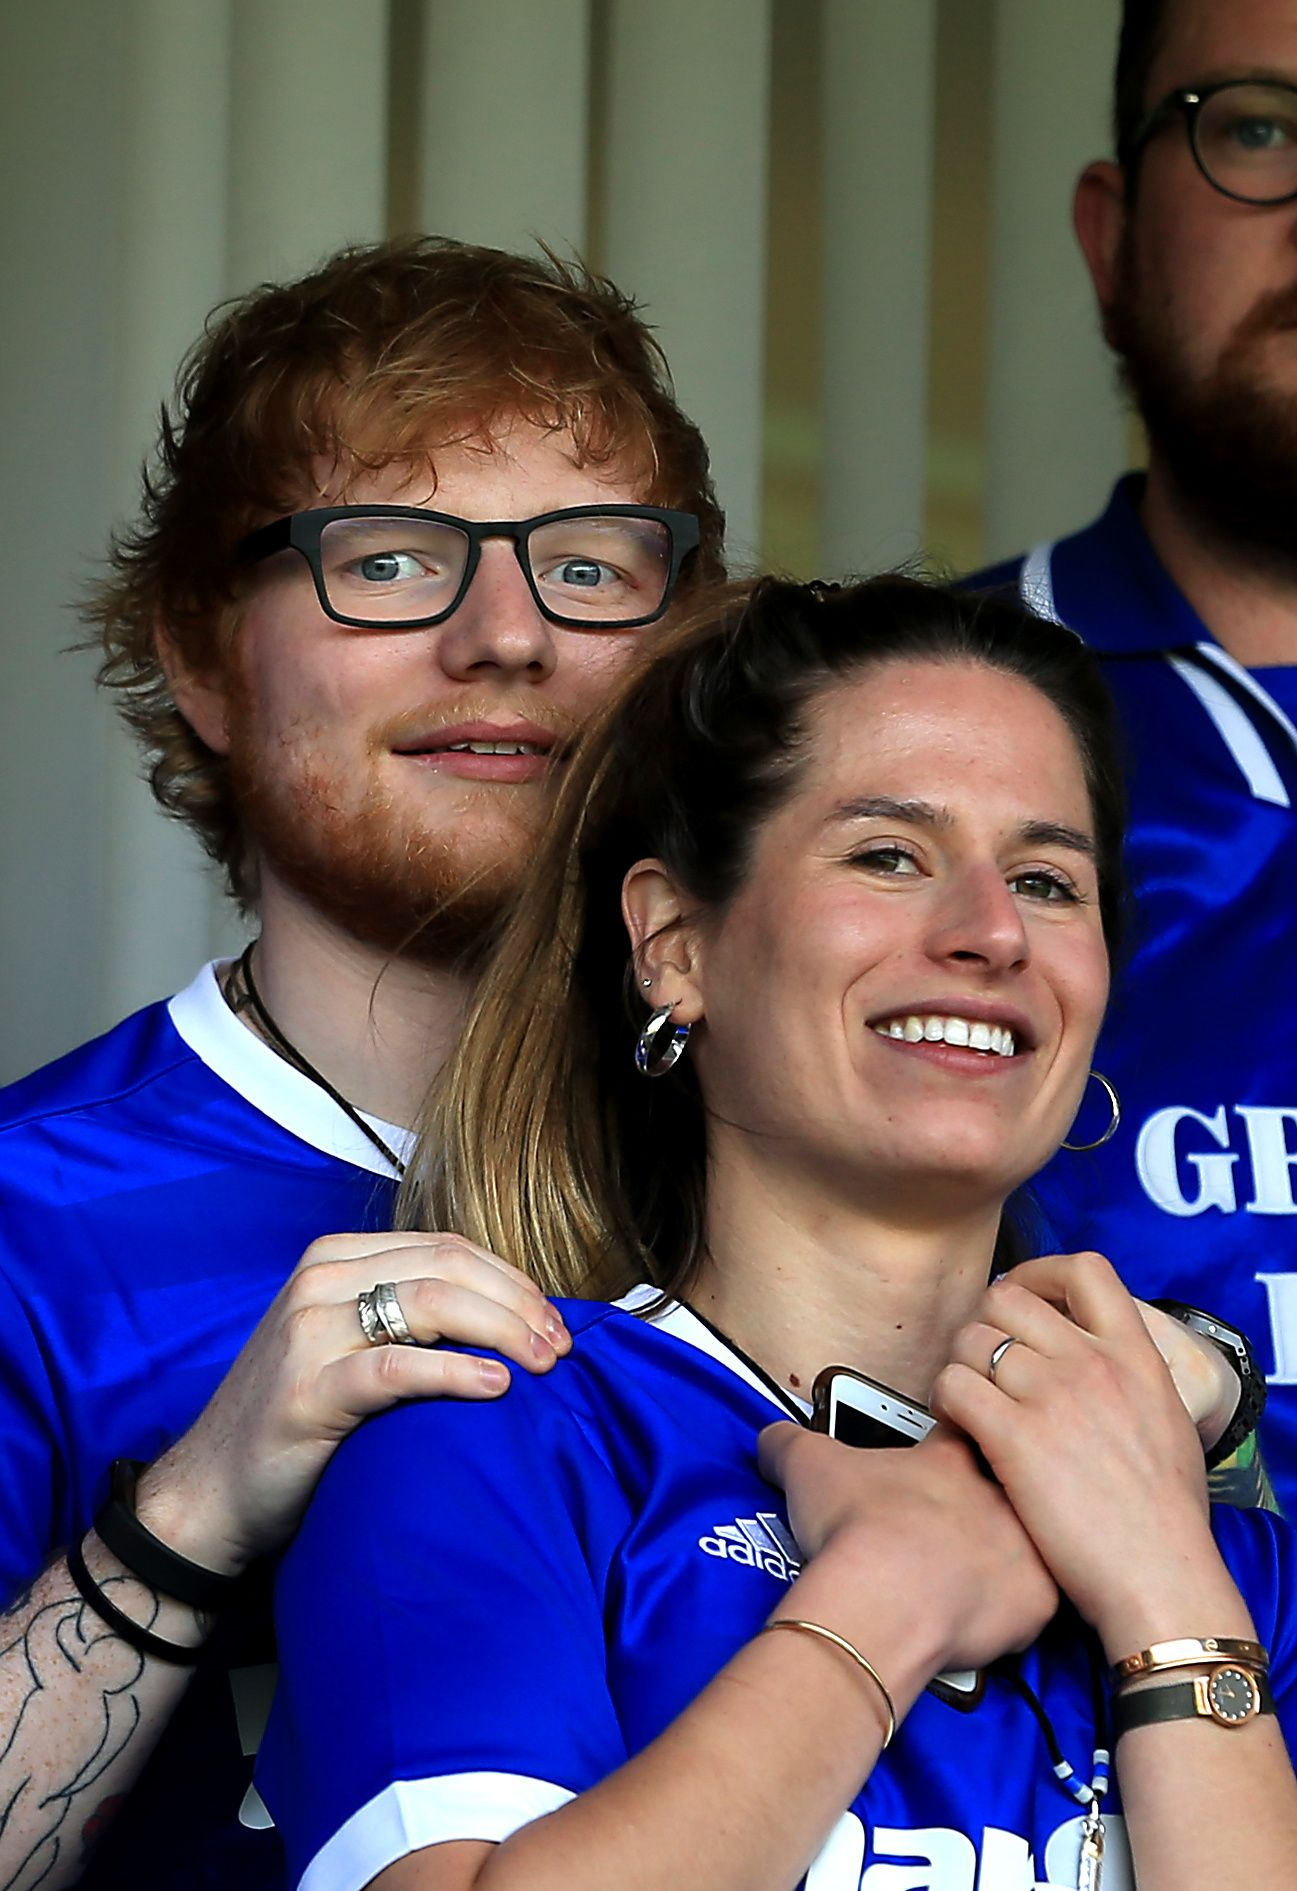 Musician Ed Sheeran and fiancee Cherry Seaborn watch the Sky Bet Championship match between Ipswich Town and Aston Villa at Portman Road on April 21, 2018 |  Photo: Getty Images